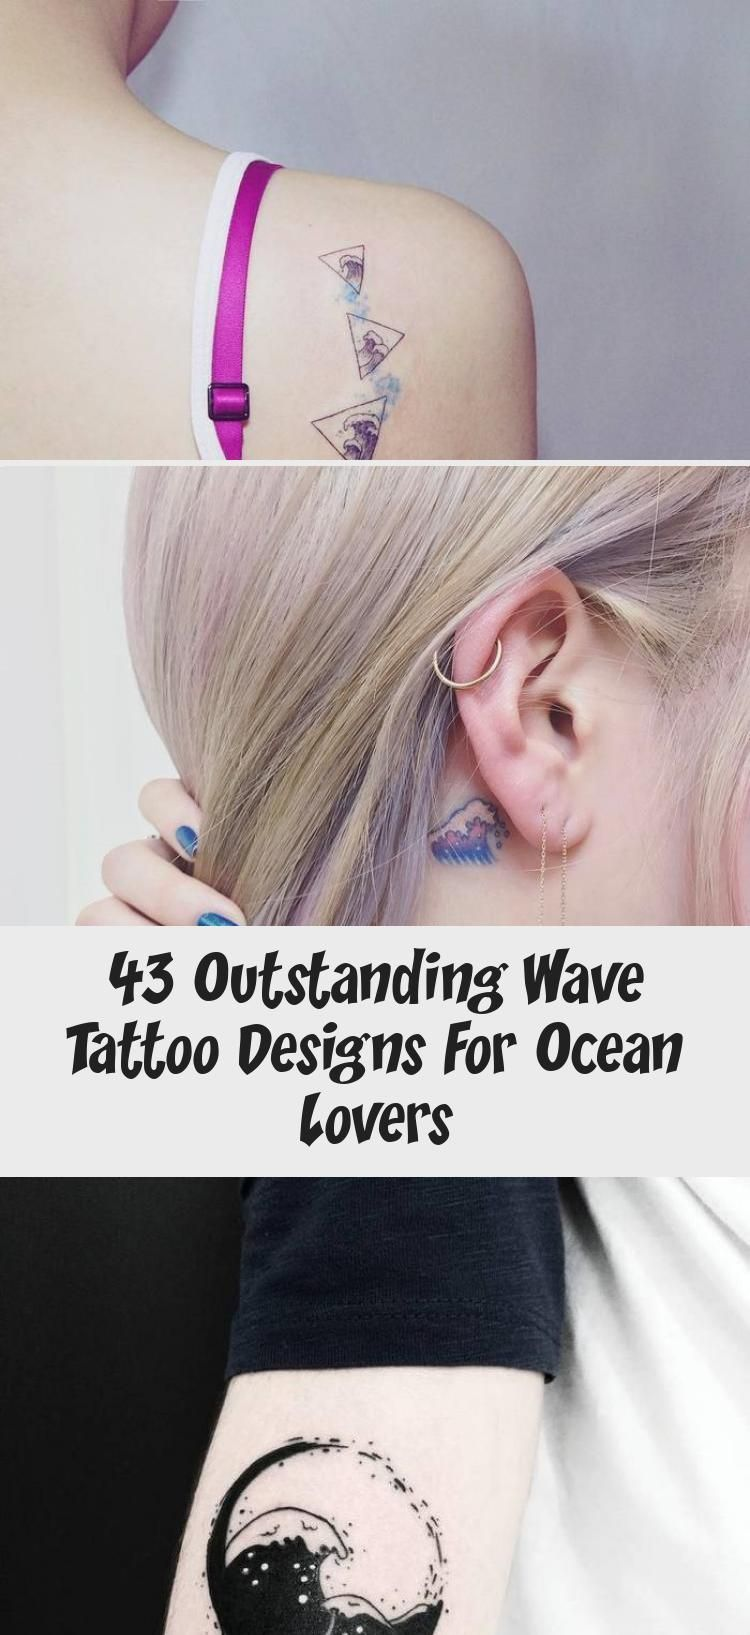 43 Outstanding Wave Tattoo Designs For Ocean Lovers - ART - Little Wave Tattoo on Ankle by victoriascarlet93 #estimular #TattoosandBodyArtWriting #TattoosandBod - #Art #cutetattoo #Designs #hiptattoo #inspirationaltattoo #lovers #Ocean #Outstanding #Tattoo #tattooleg #Wave #wavetattoo